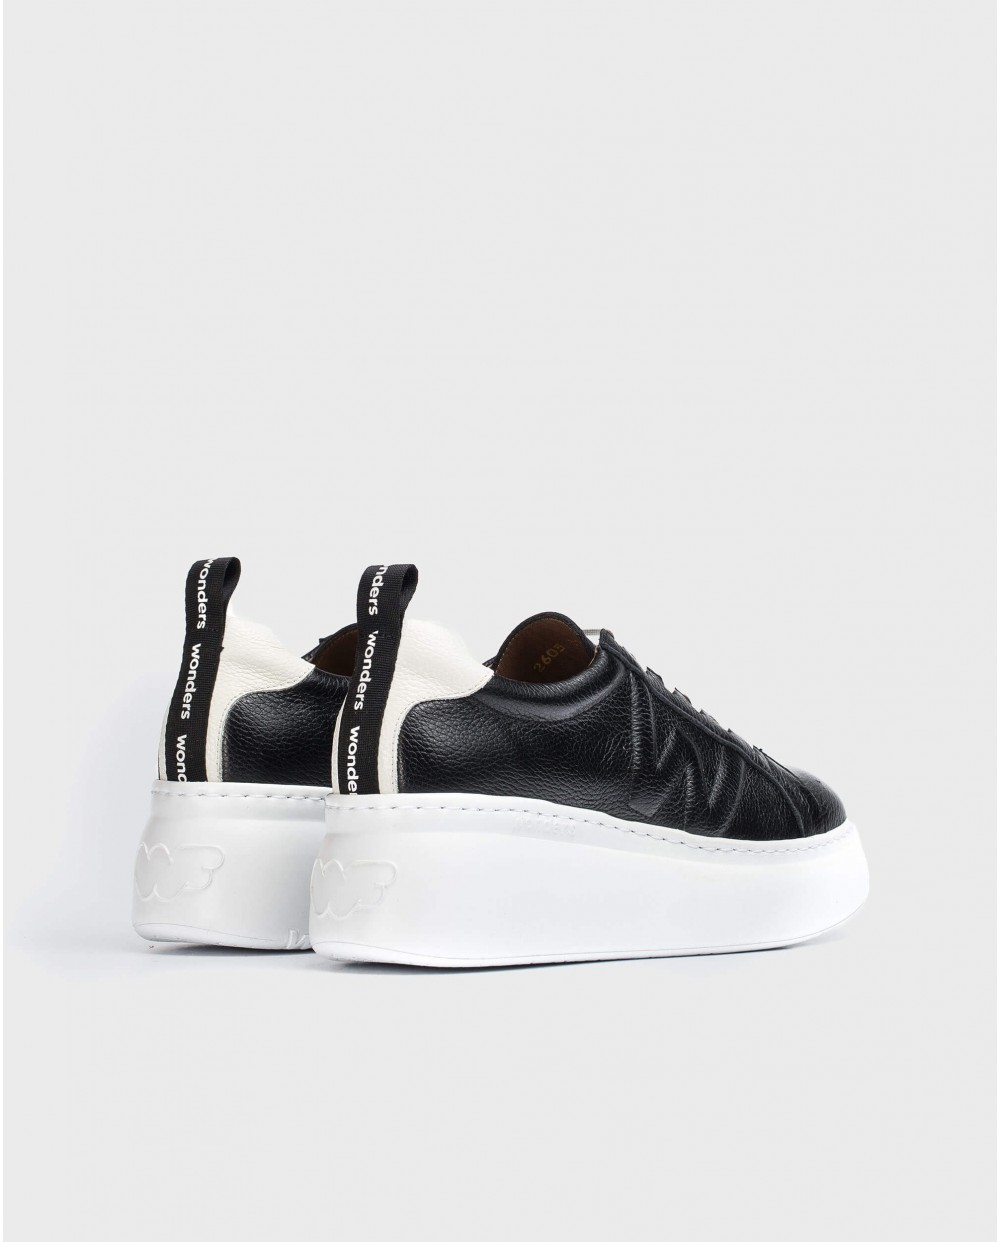 Wonders-Ready to wear-Dorita Black and White Trainers